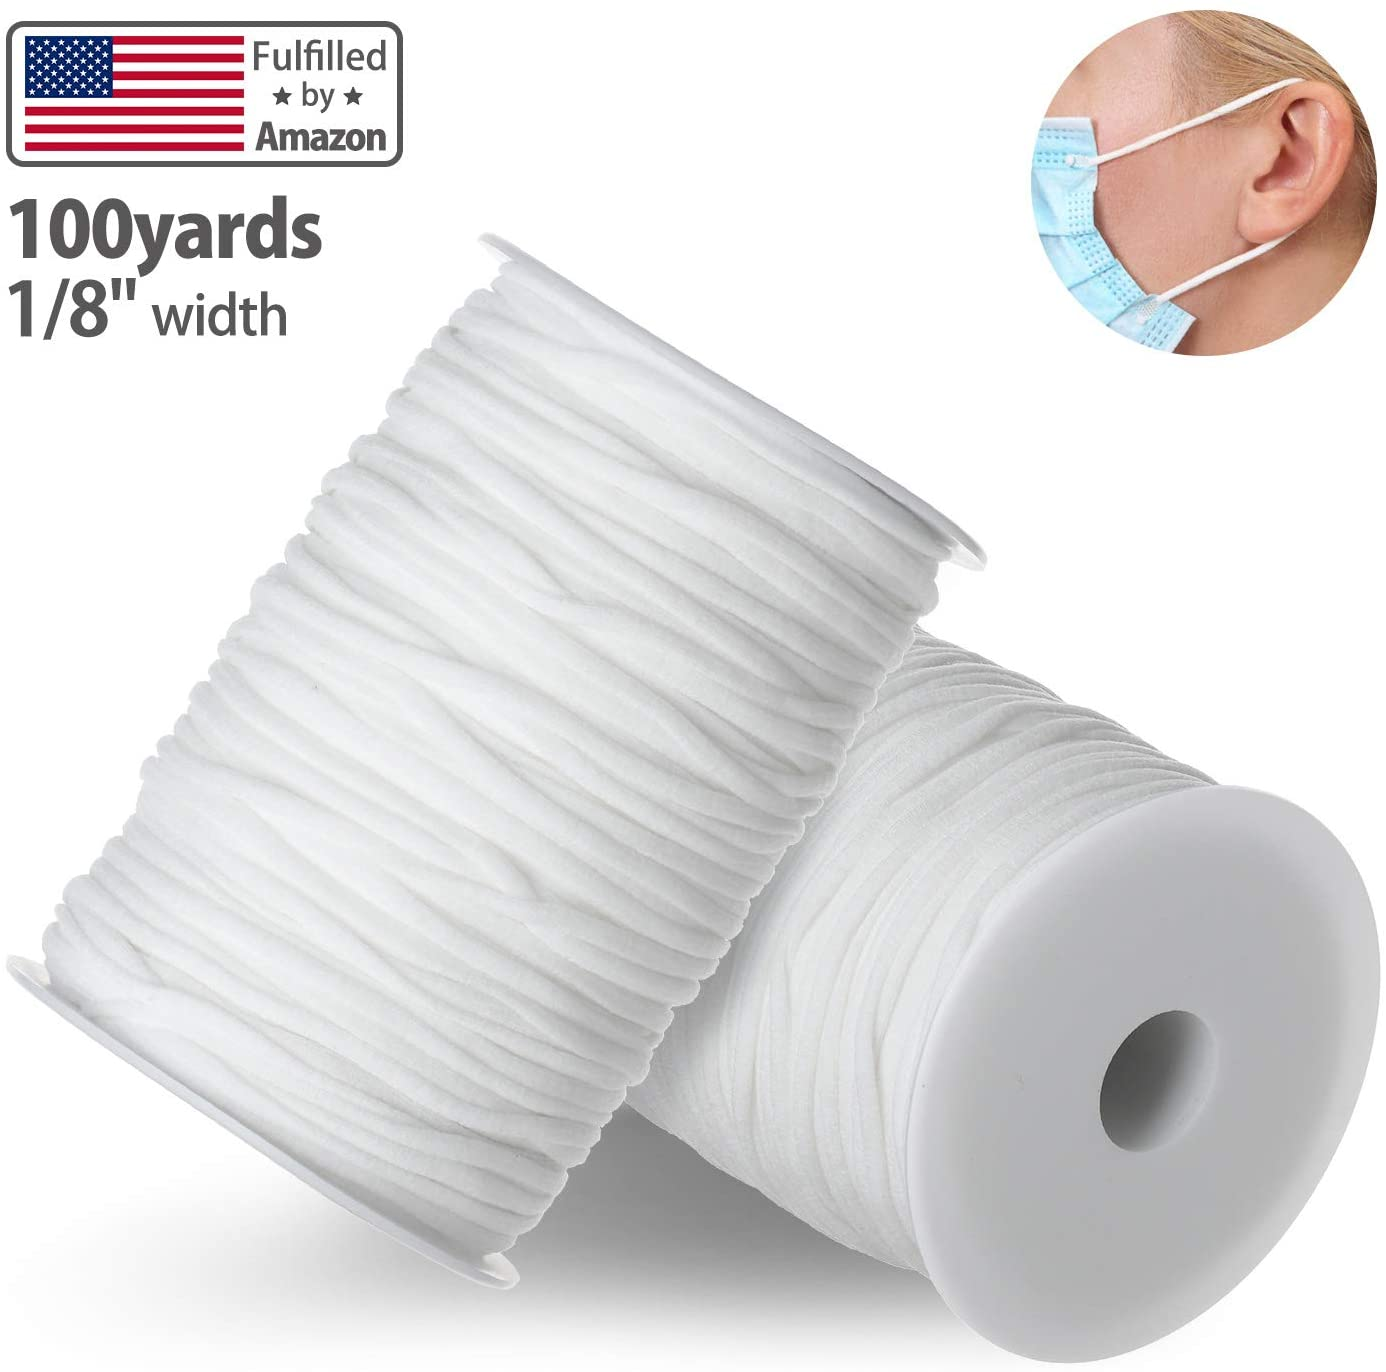 Elastic Bands for Sewing 1/8 inch, 100 Yard Elastic String for Masks, Elastic Cord for Masks, White Cord Stretchy Ear Tie Rope Handmade String for Sewing, Making Masks DIY (3mm White)